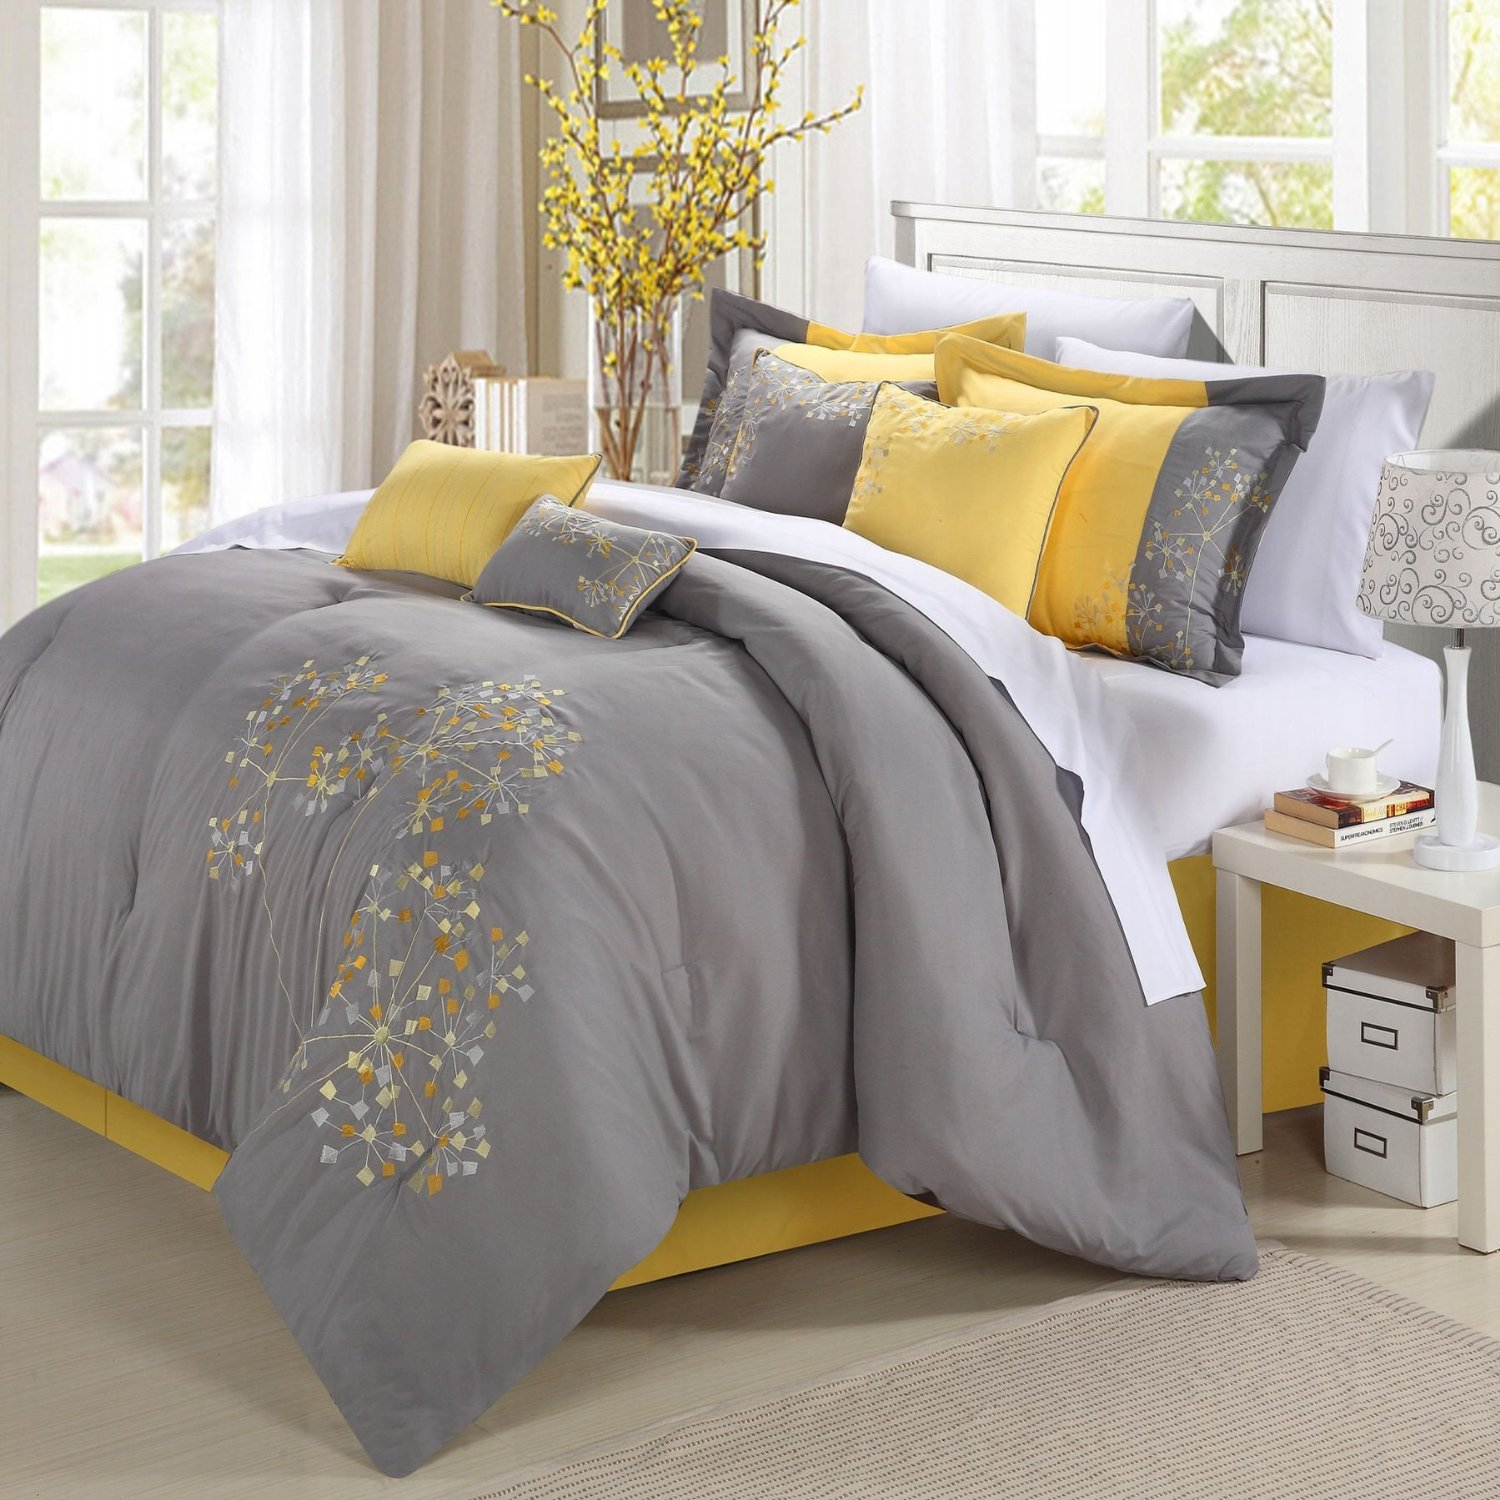 Queen Size Bed Sets Cheap | Queen Size Bedding Sets | Kids Comforter Sets